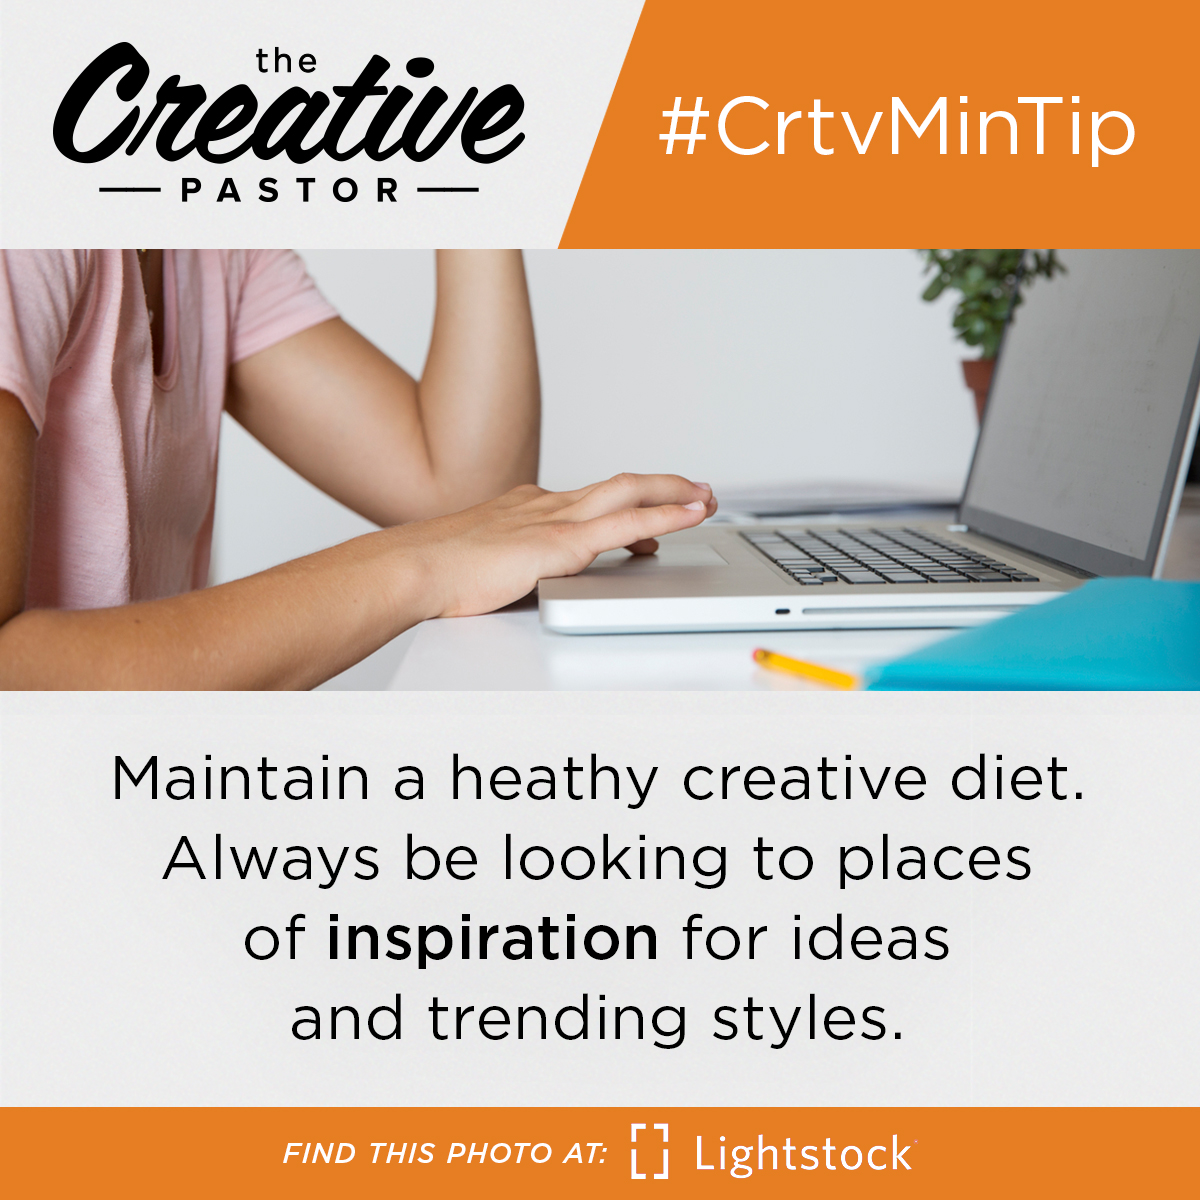 #CrtvMinTip: Maintain a heathy creative diet. Always be looking to places of inspiration for ideas and trending styles.